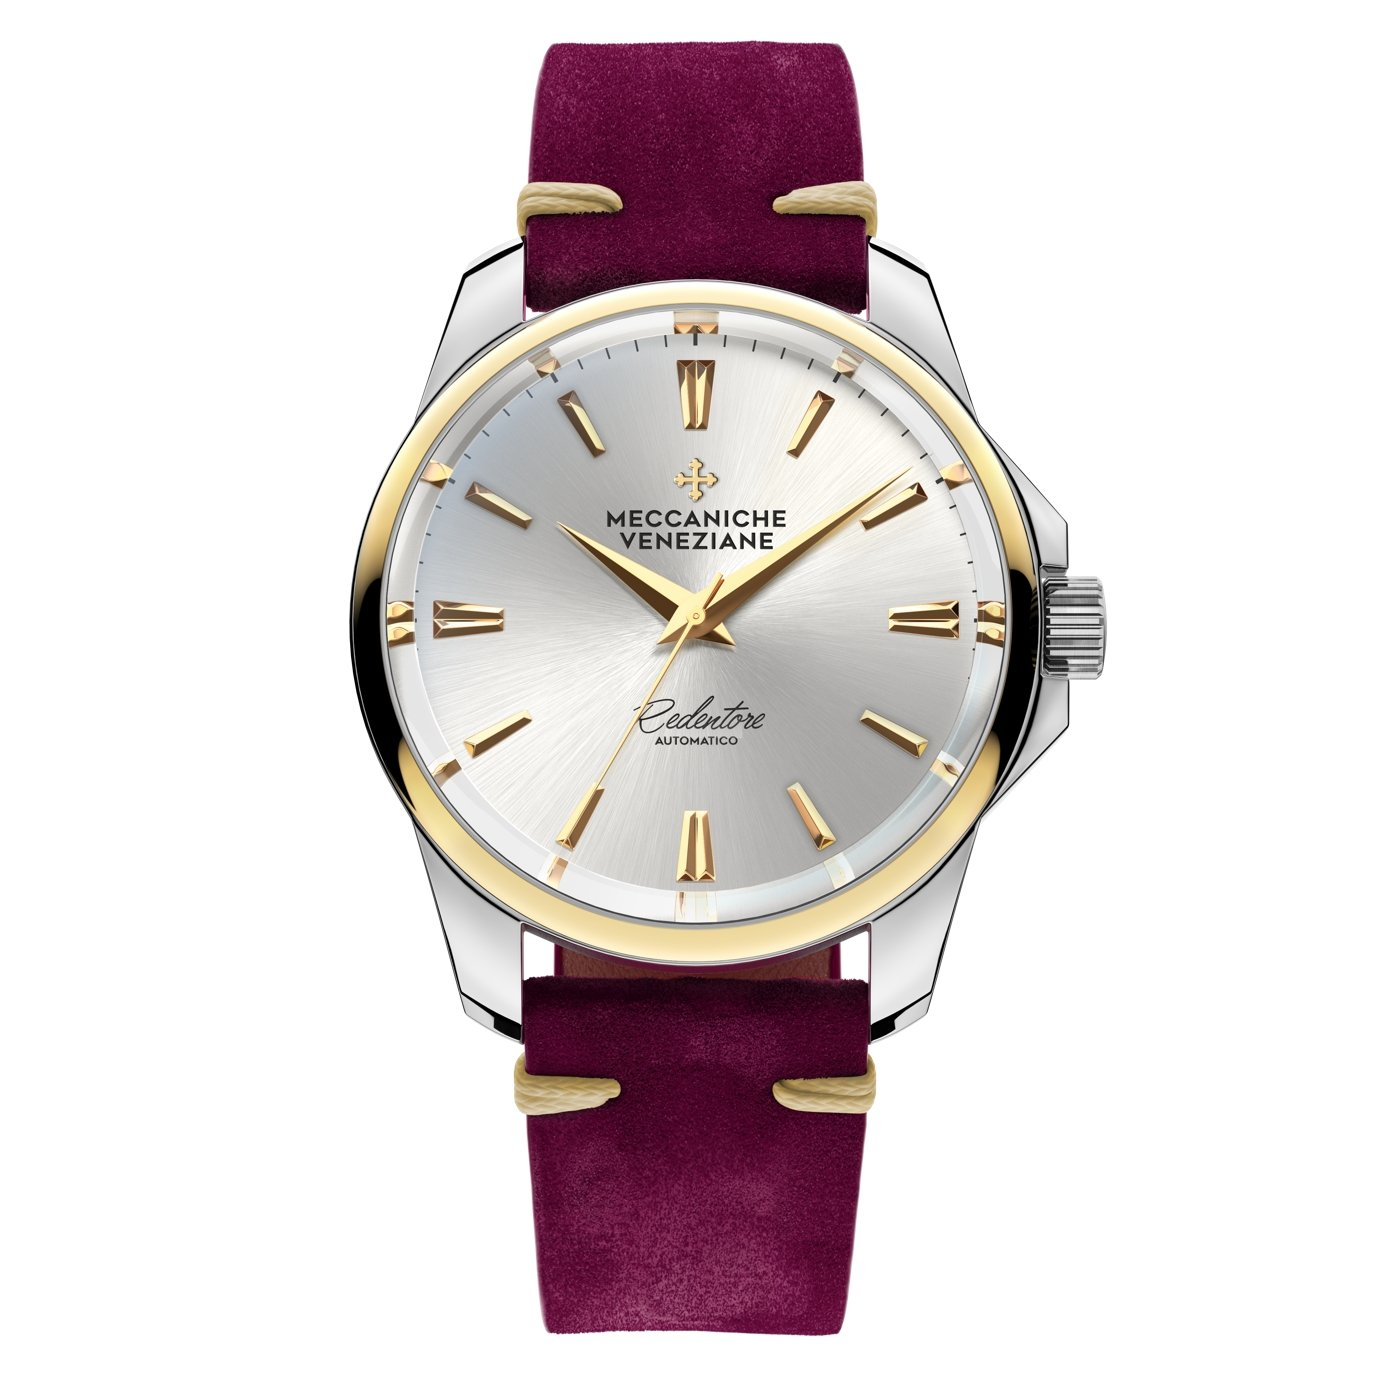 Meccaniche Veneziane Redentore 36 Purple - Watches & Crystals